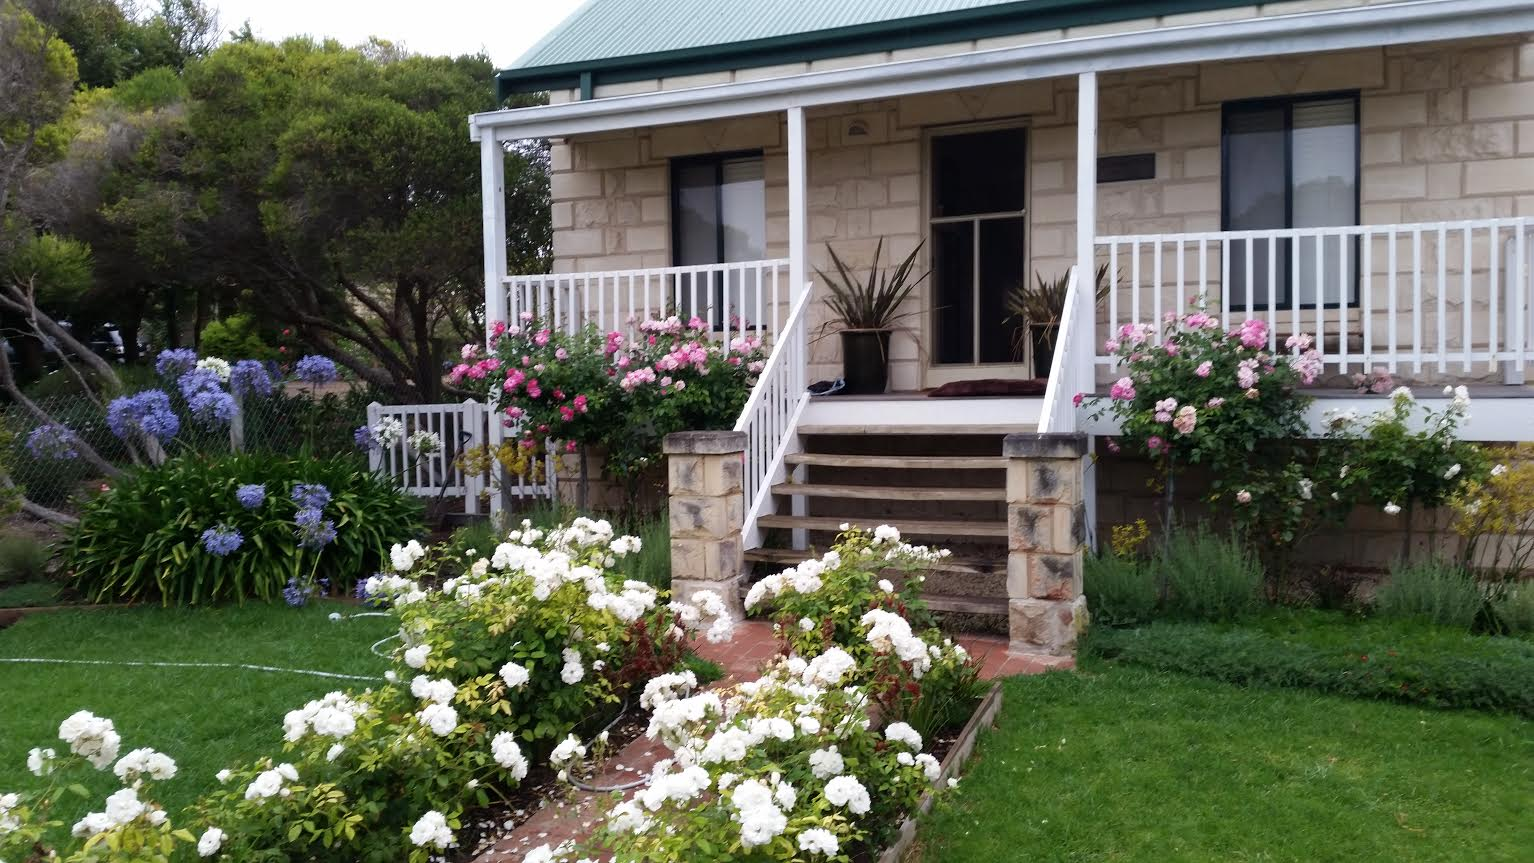 Blairgowrie Beach Cottage, I went to discover the beaches that surround this gem I was amazed